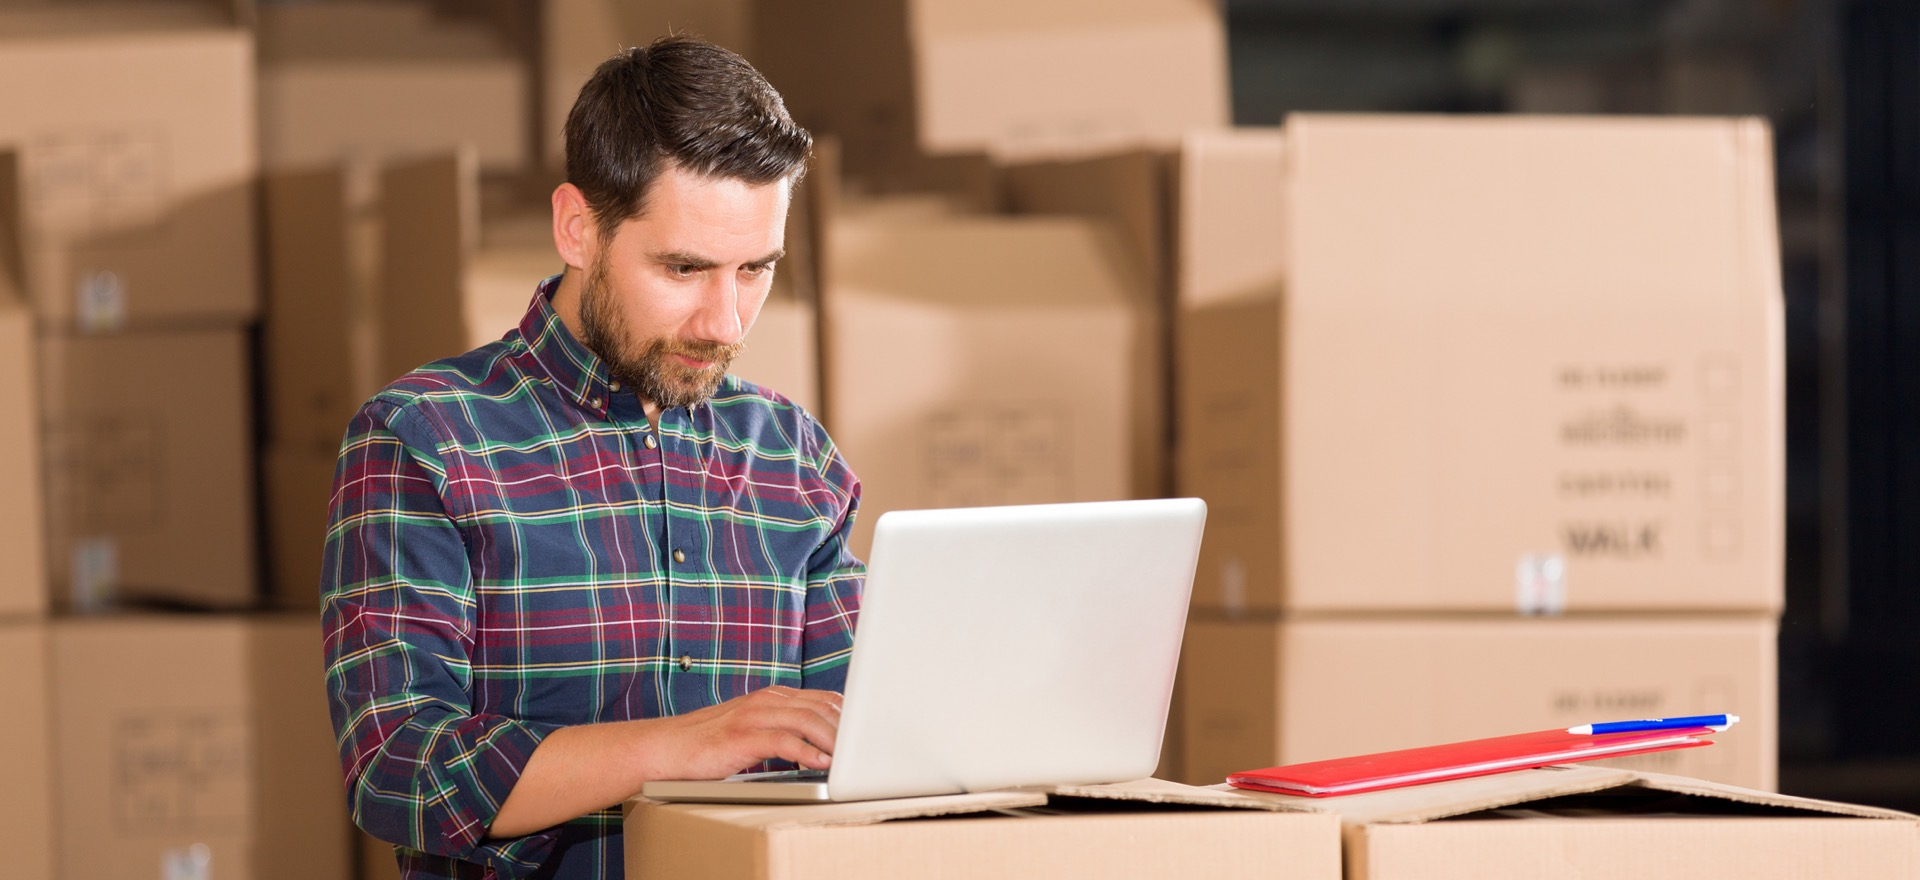 Why Do We Need Inventory Management Software?